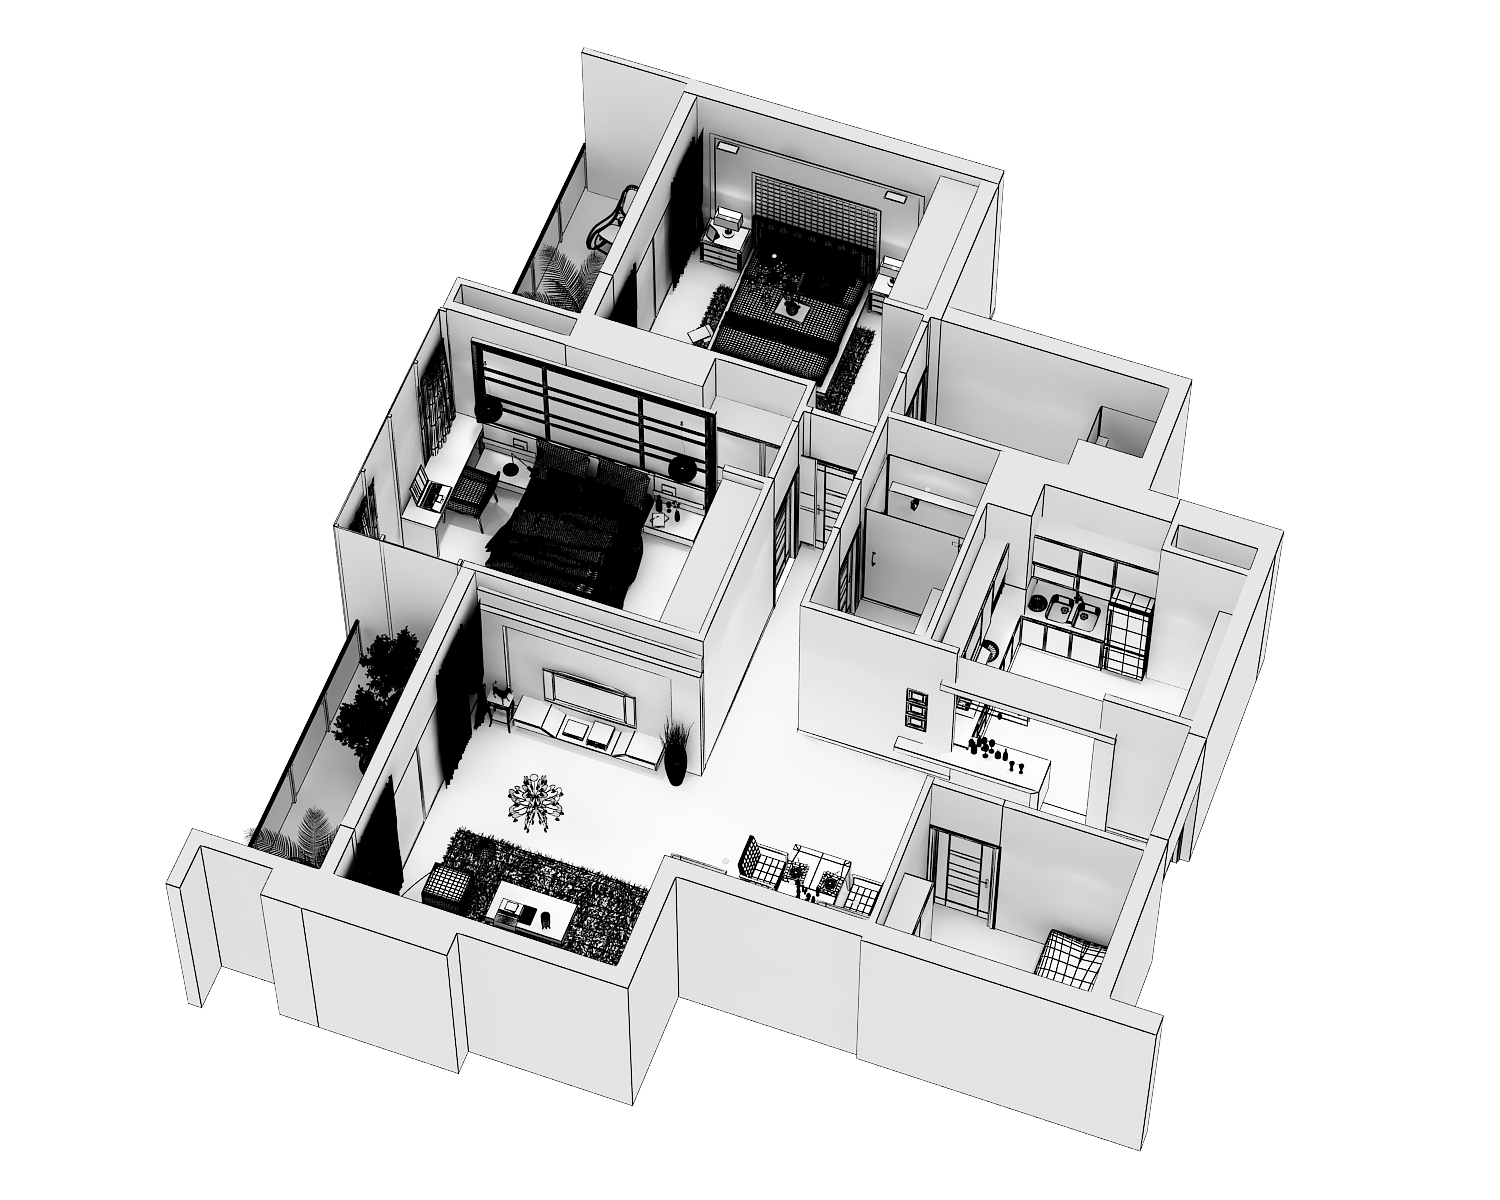 detailed modern interior cutaway 3d model max dwg 279990